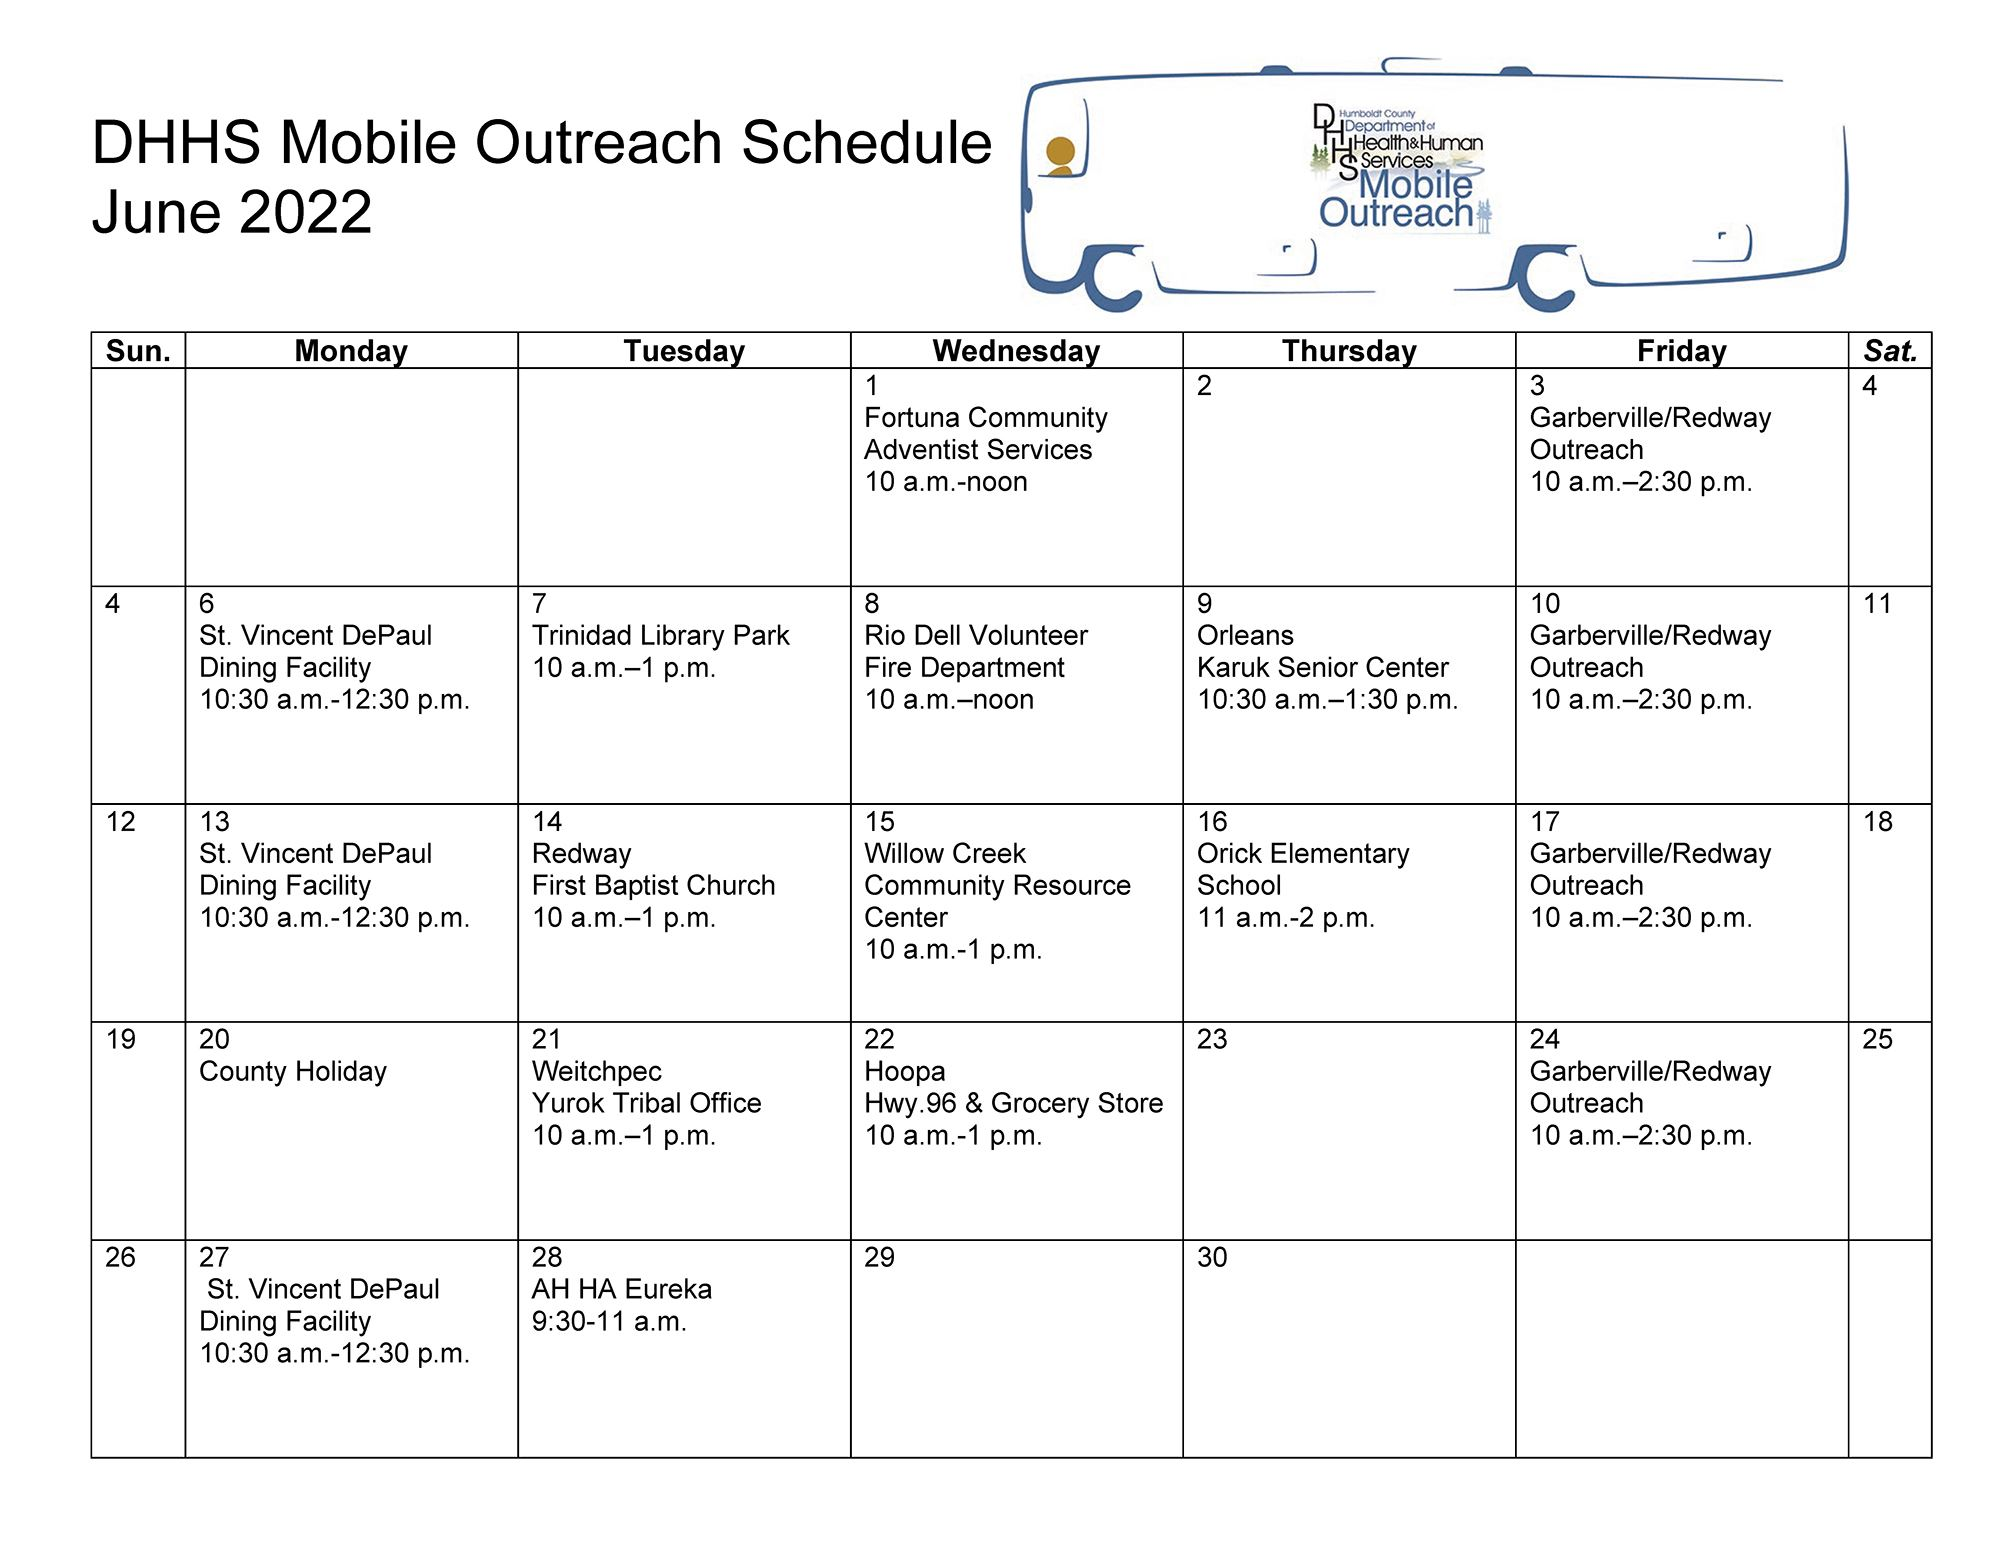 Department of Health & Human Services Mobile Outreach Schedule: Click for Accessible PDF